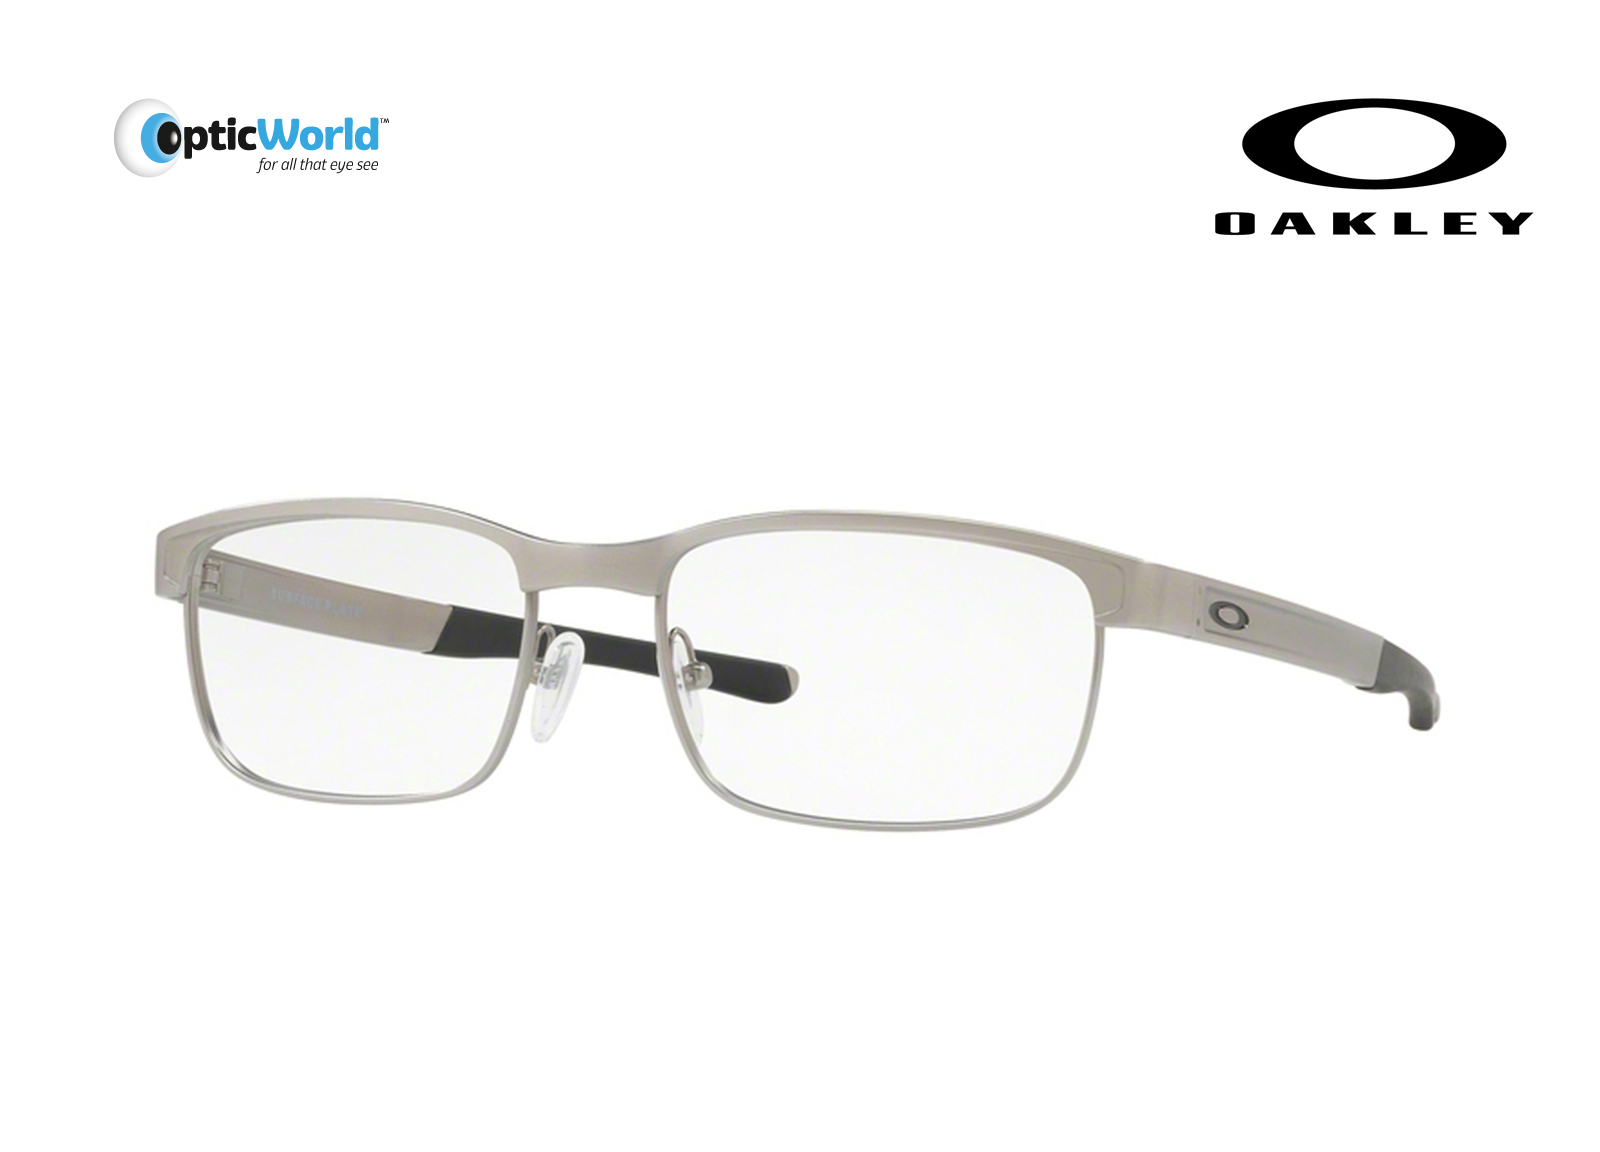 b6cd007cd3 Eyeglasses Oakley Surface Plate 5132-03 54 Satin Chrome. About this  product. Picture 1 of 2  Picture 2 of 2